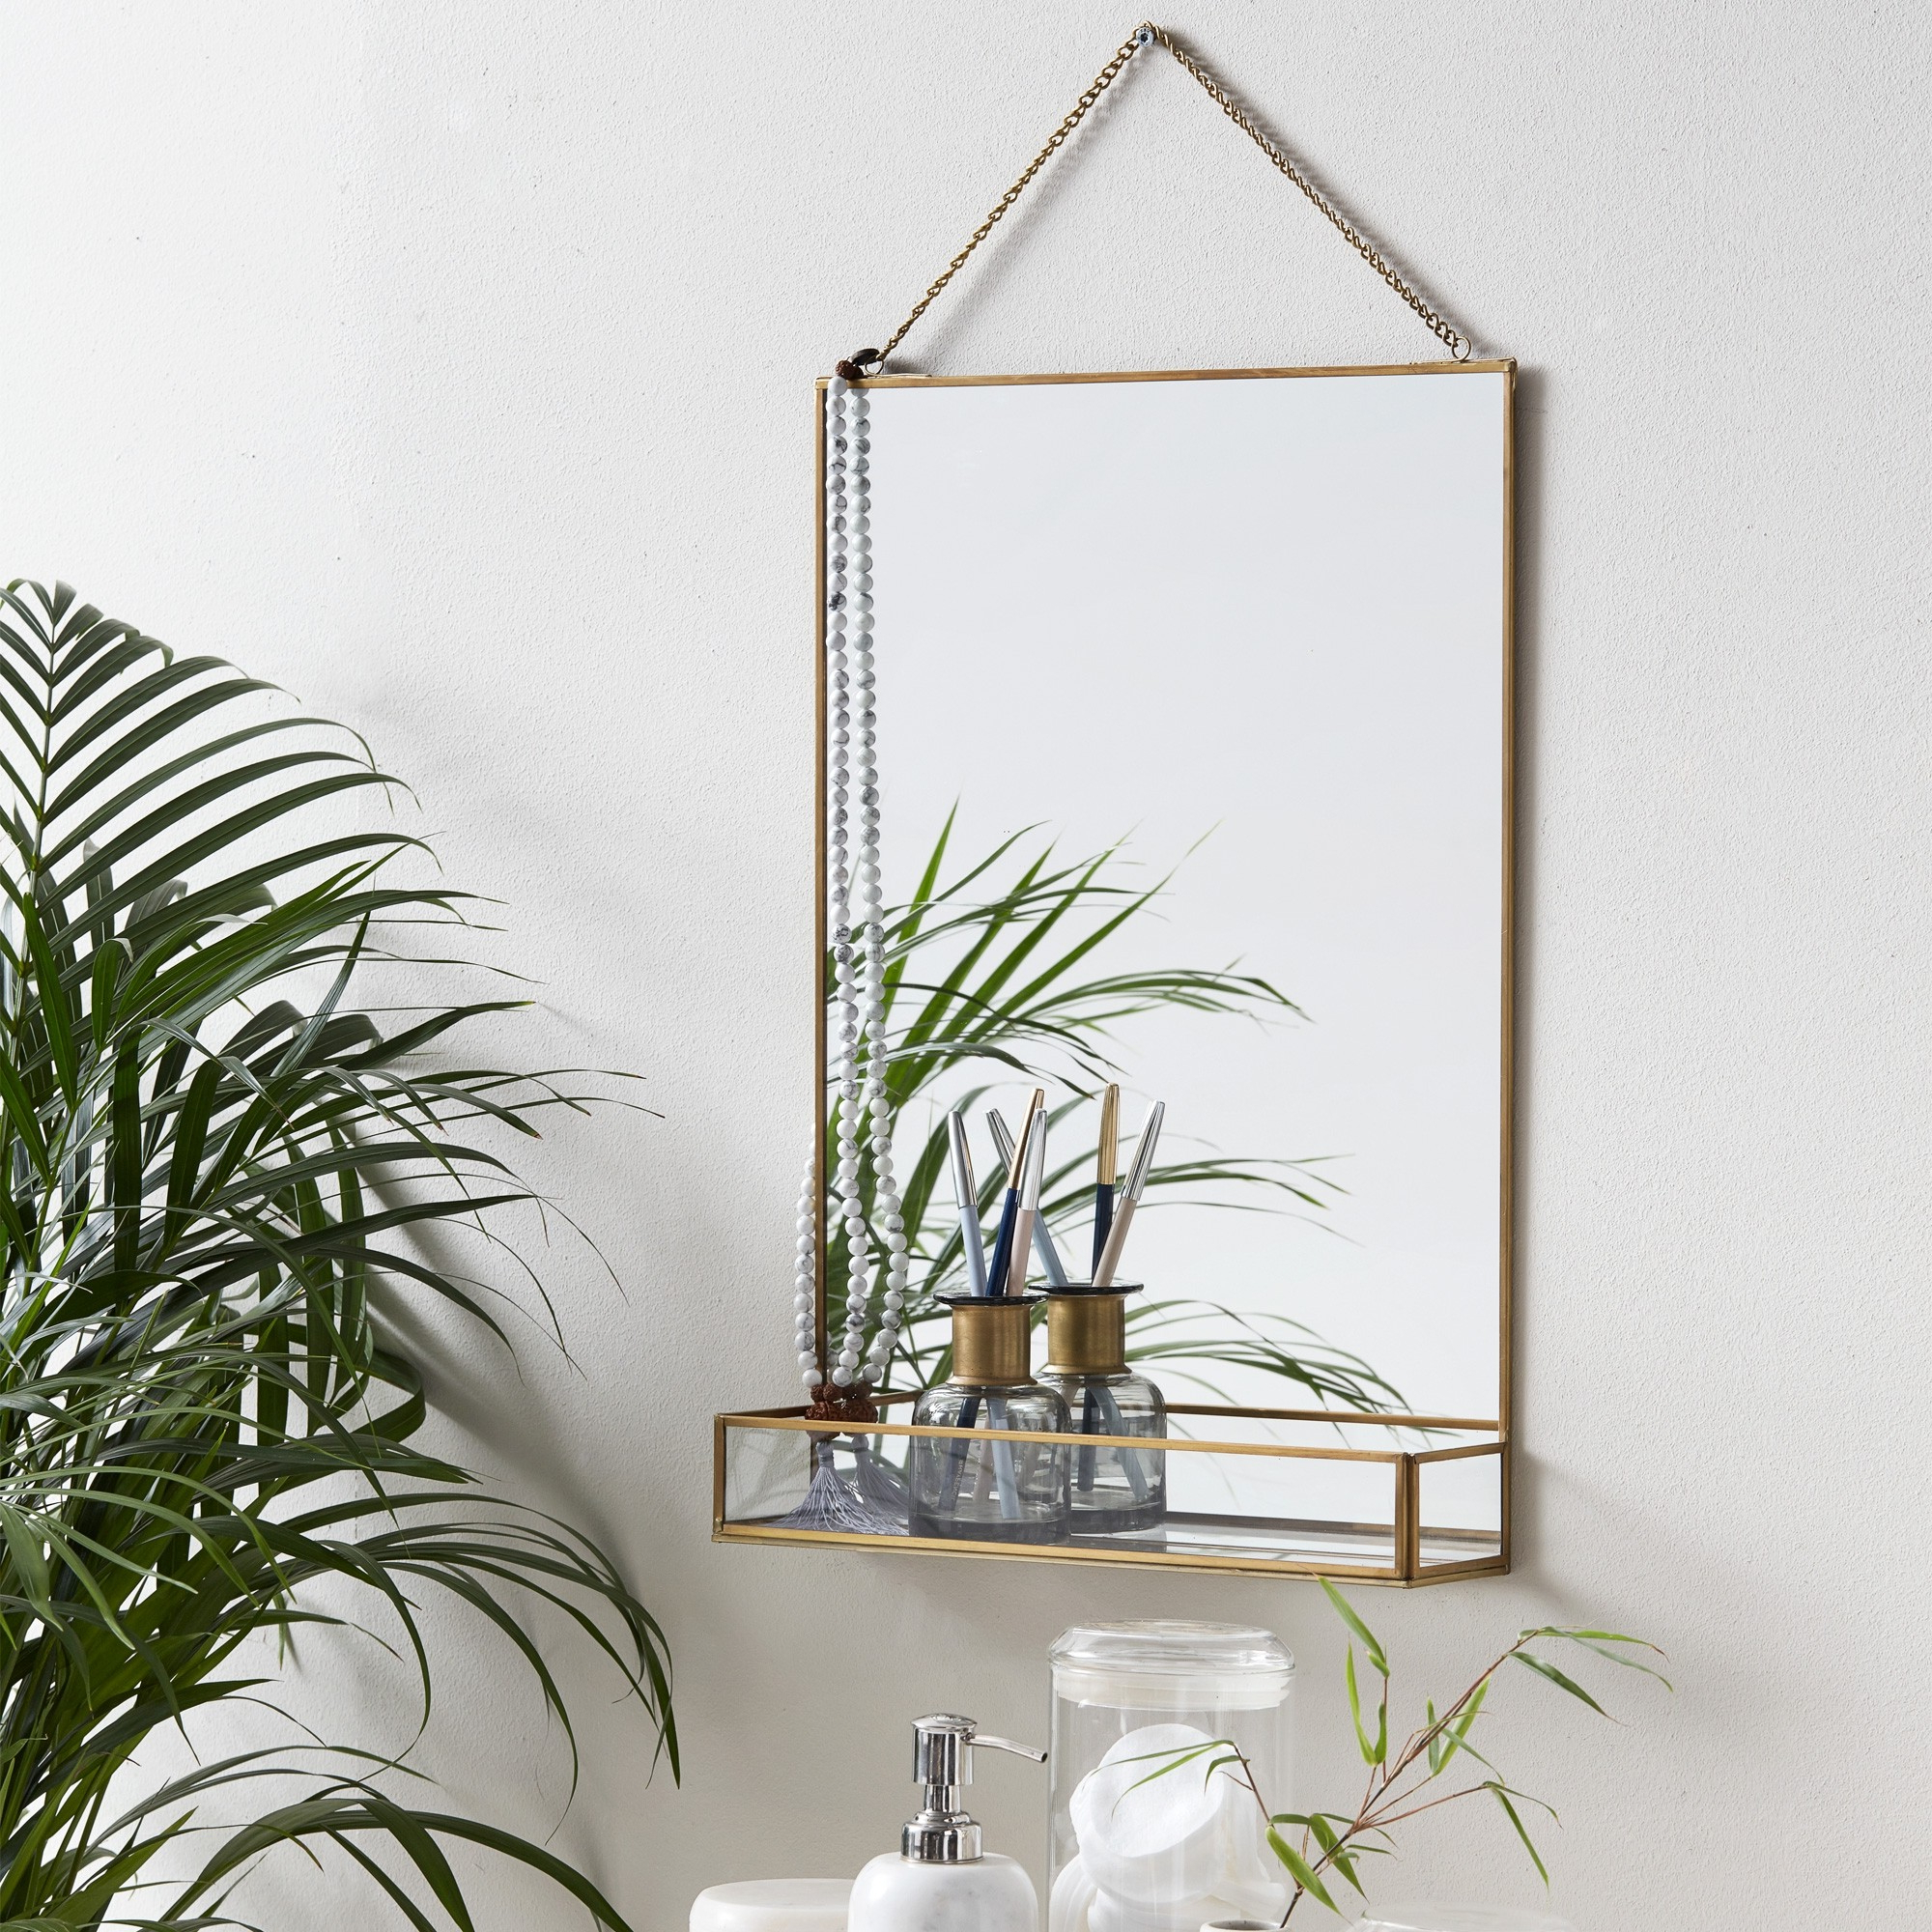 Wall Mirrors With Shelf Within Widely Used Chain Hanging Wall Mirror With Shelf (View 12 of 20)